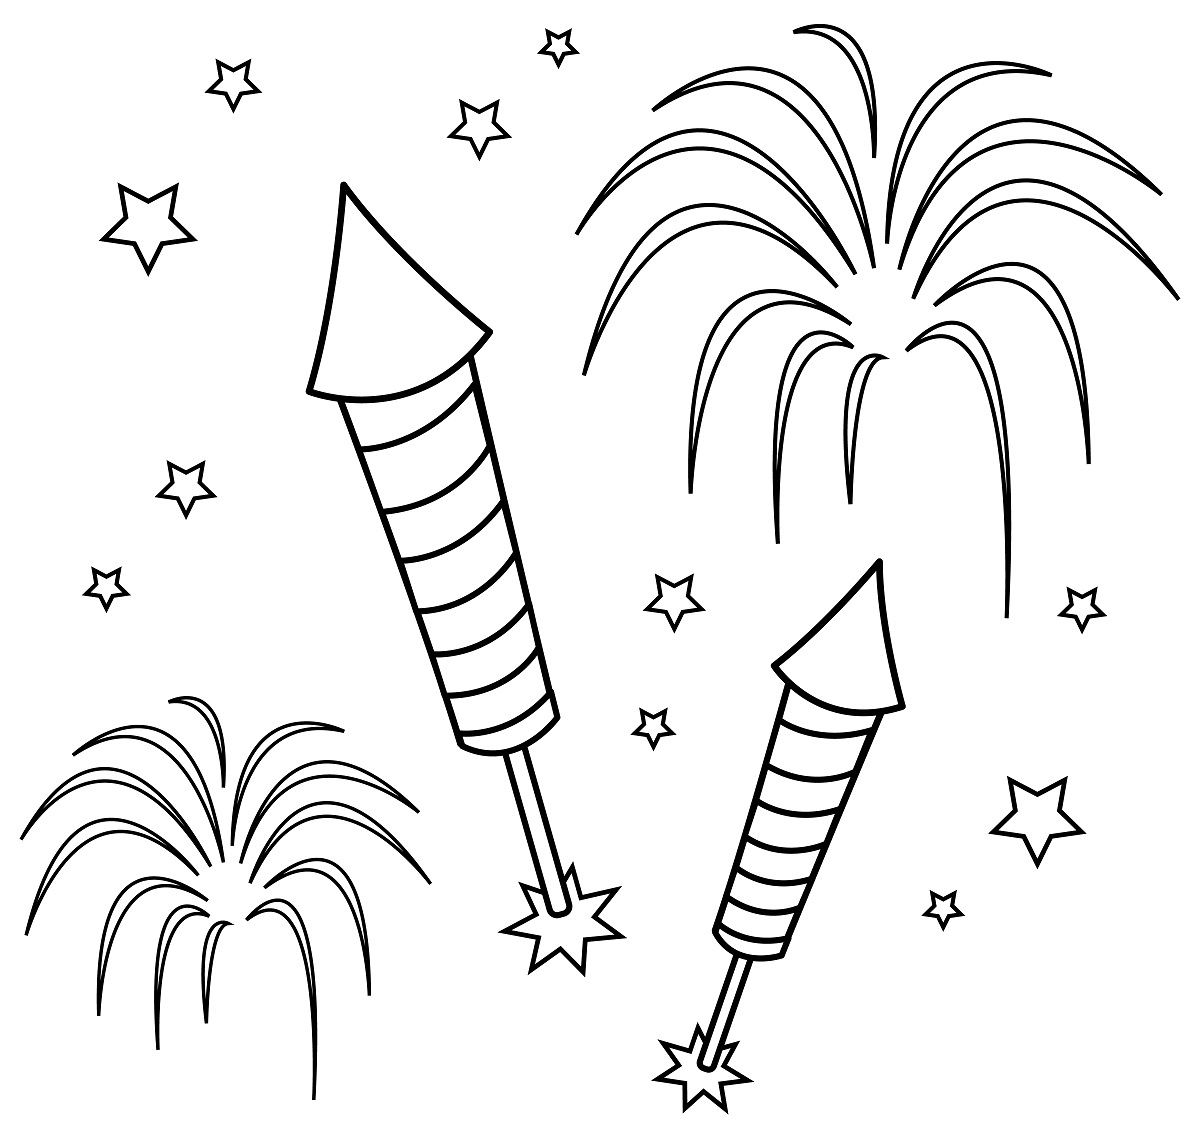 ... Printable Canada Flag. on free coloring pages for new years day